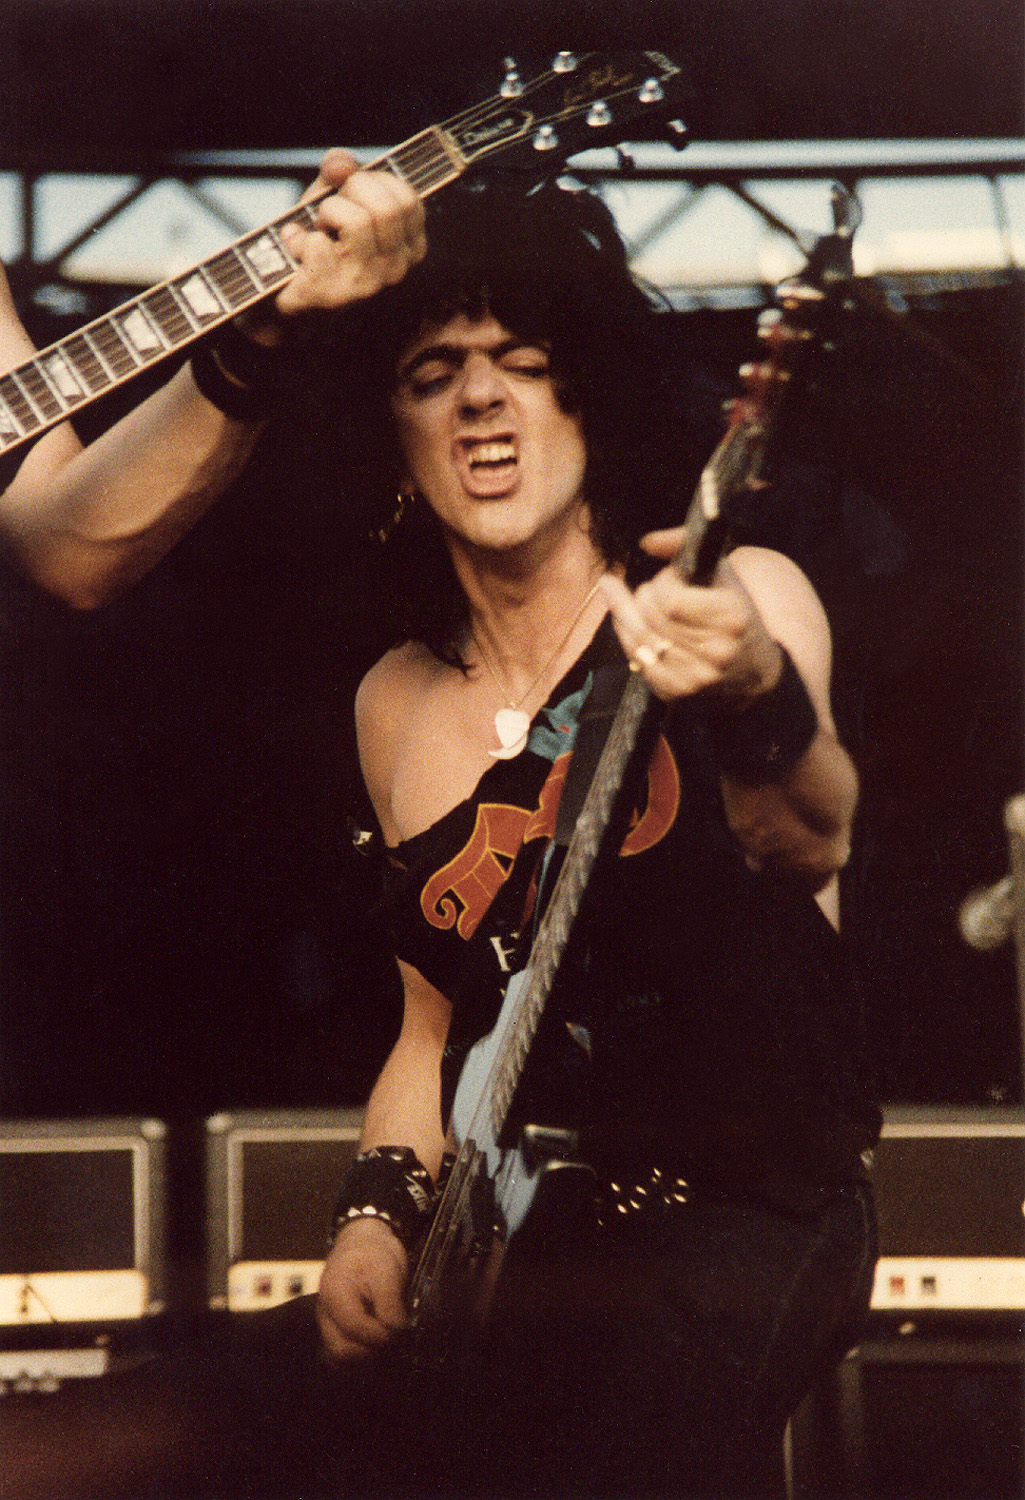 https://upload.wikimedia.org/wikipedia/commons/b/b3/Jimmy_Bain.jpg